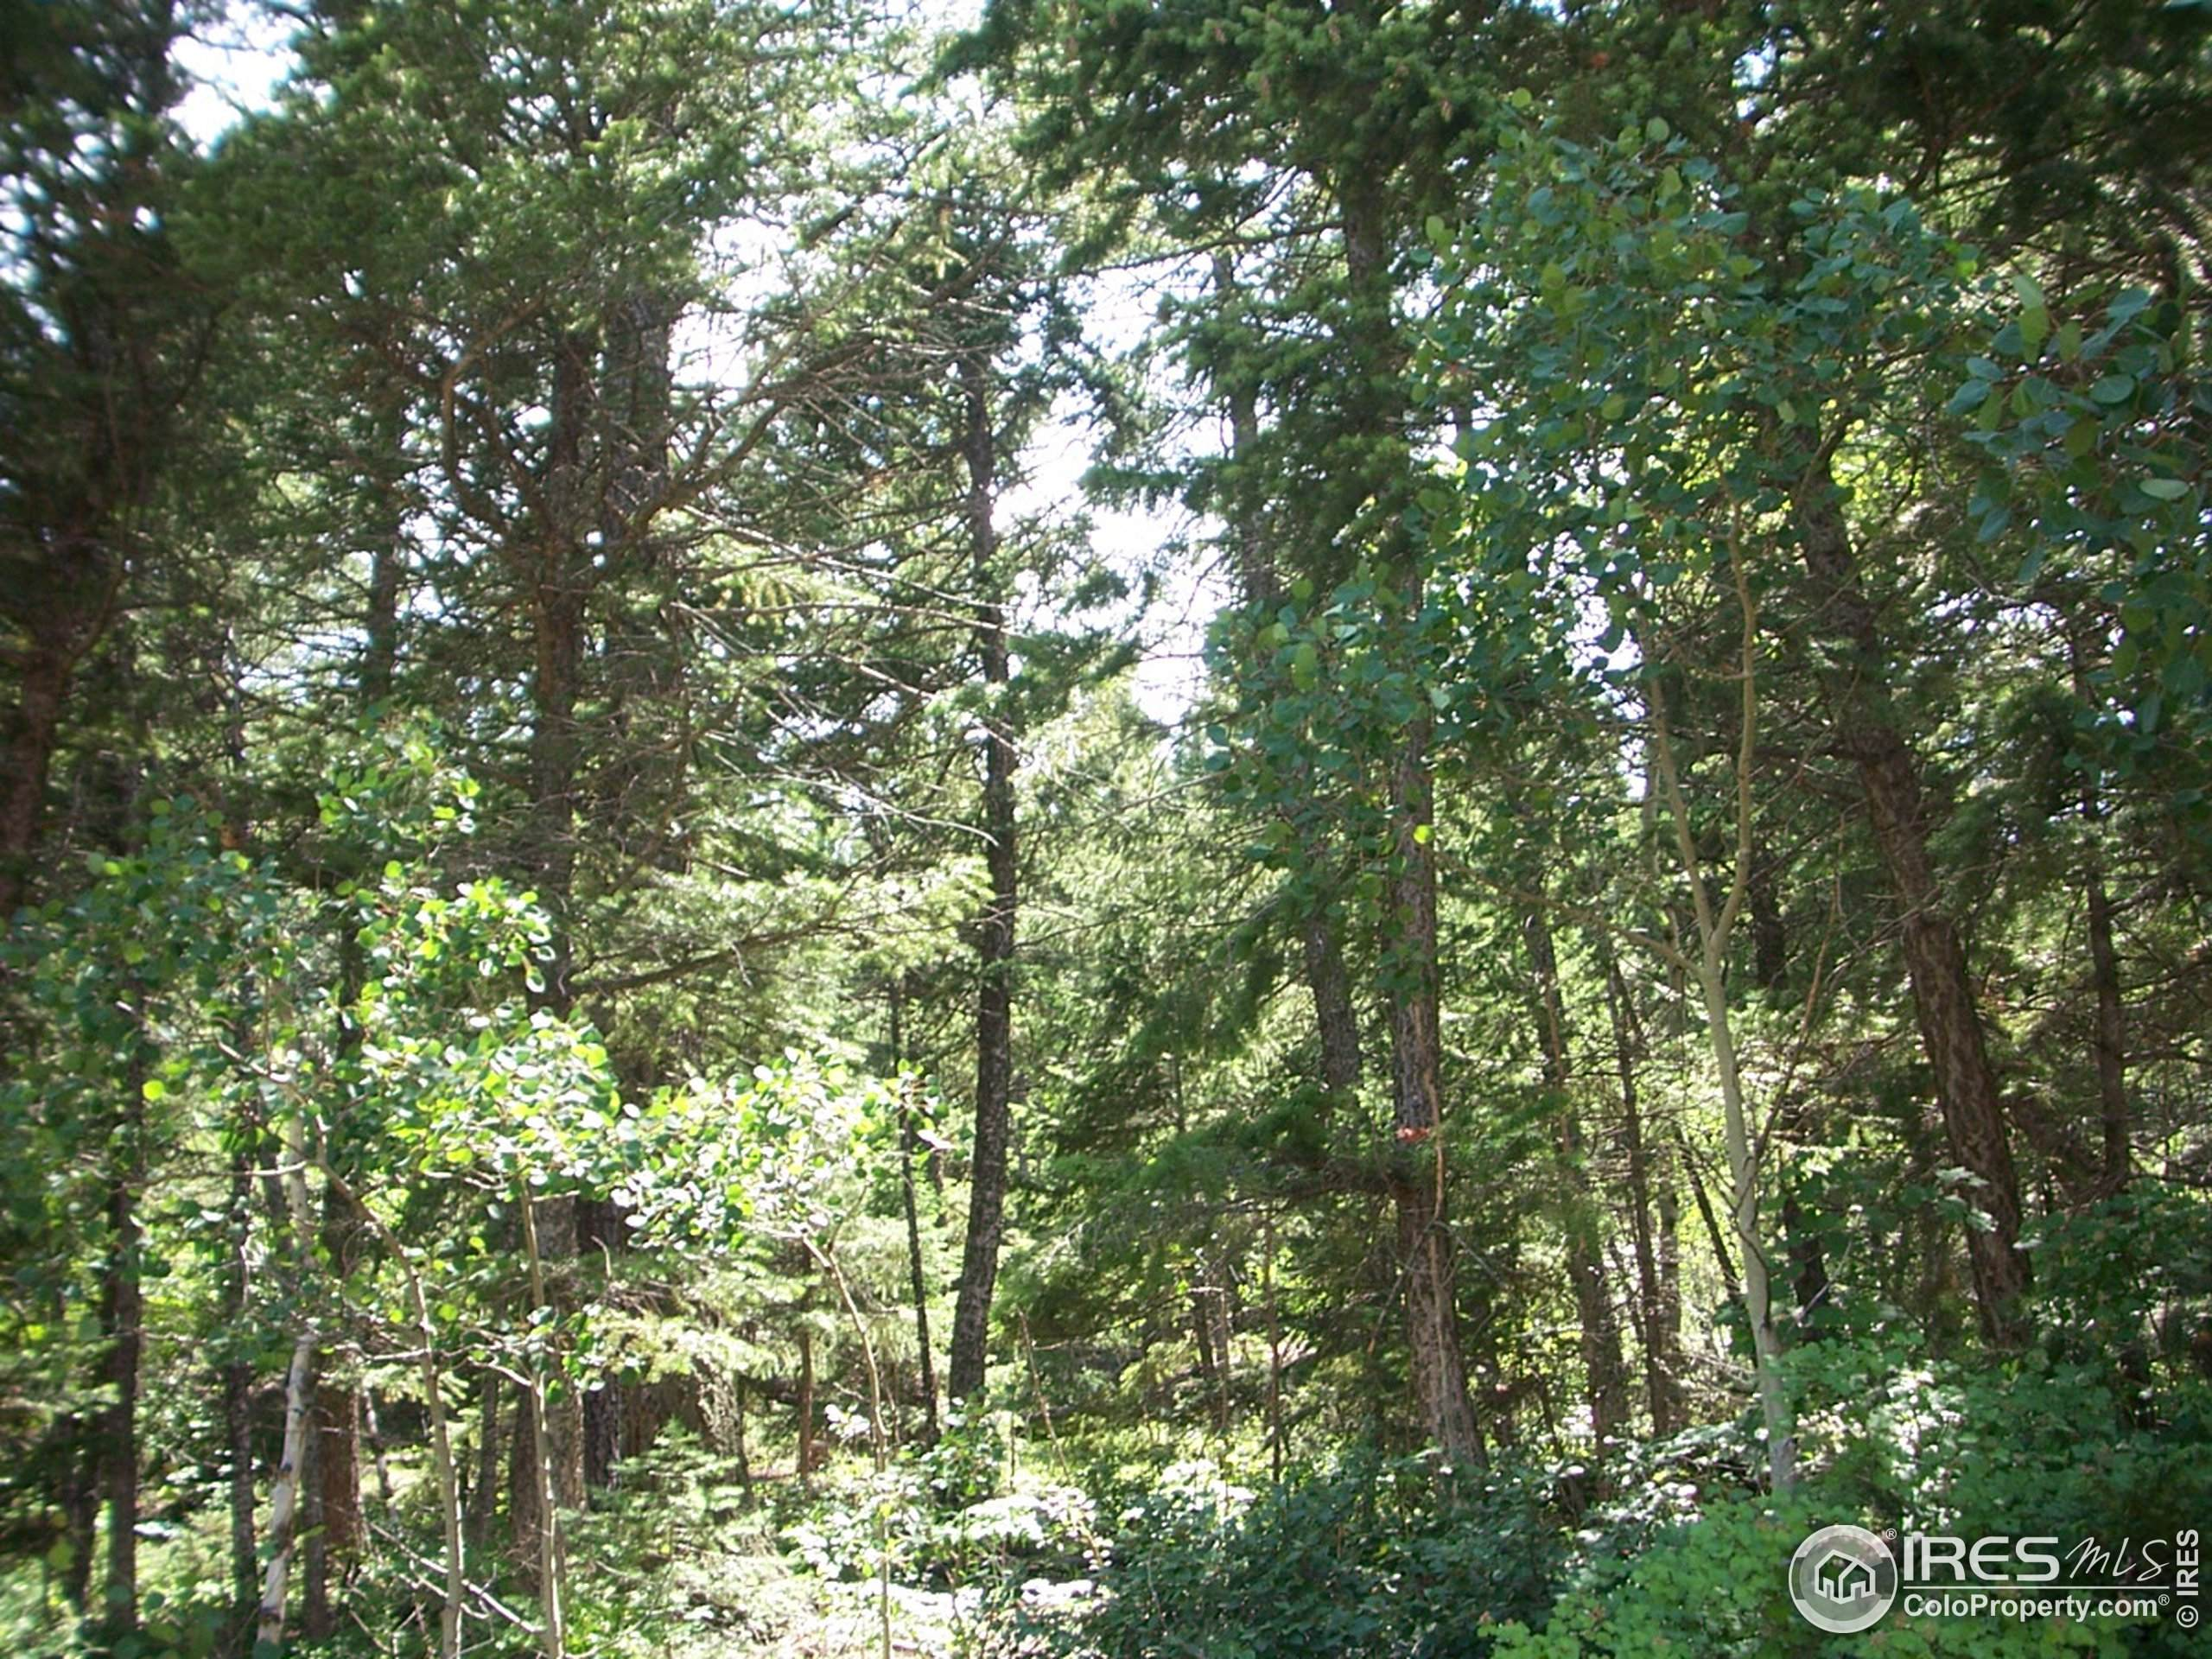 1548 Chambers Dr, Boulder, CO 80305 (#905517) :: The Brokerage Group